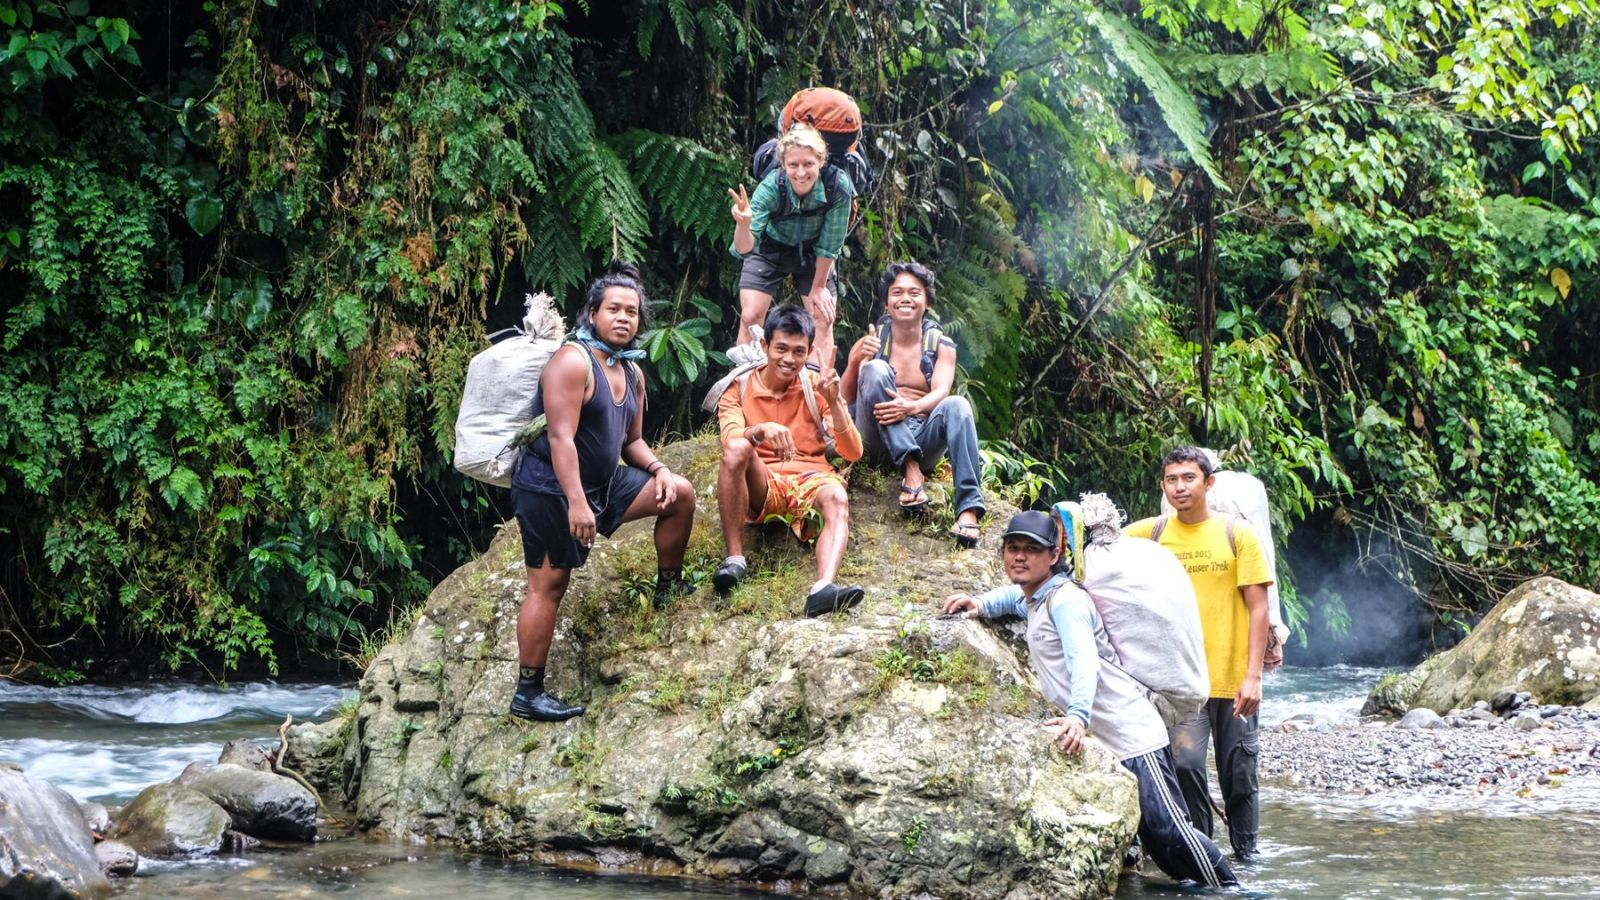 photo of hikers in gunung leuser national park